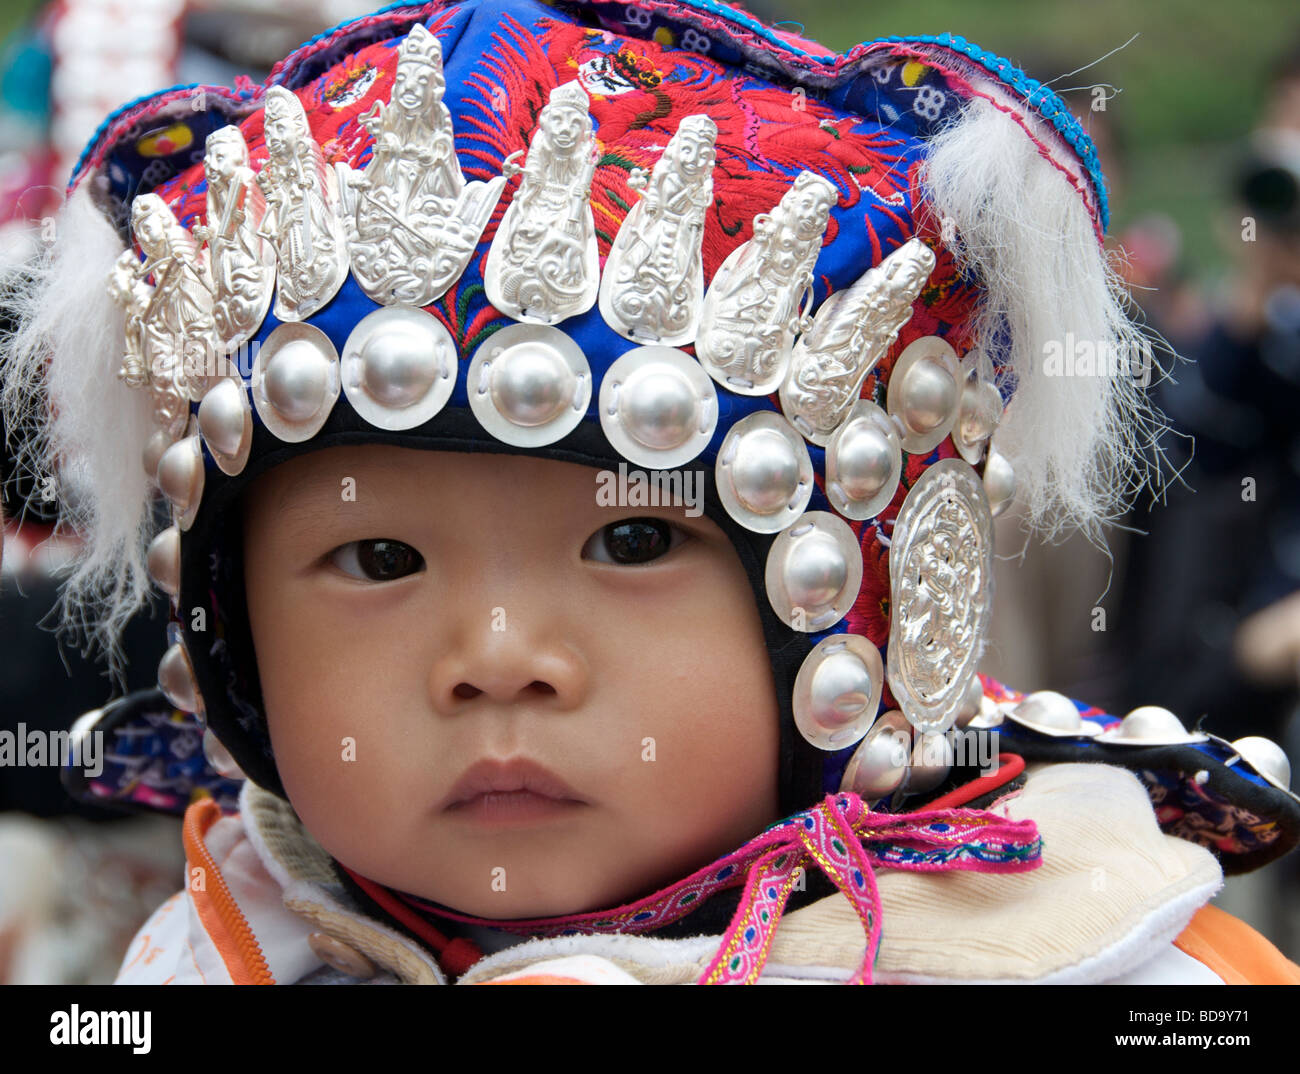 Close up Miao baby with ornate headdress Drum Festival Shidong Guizhou Province China - Stock Image